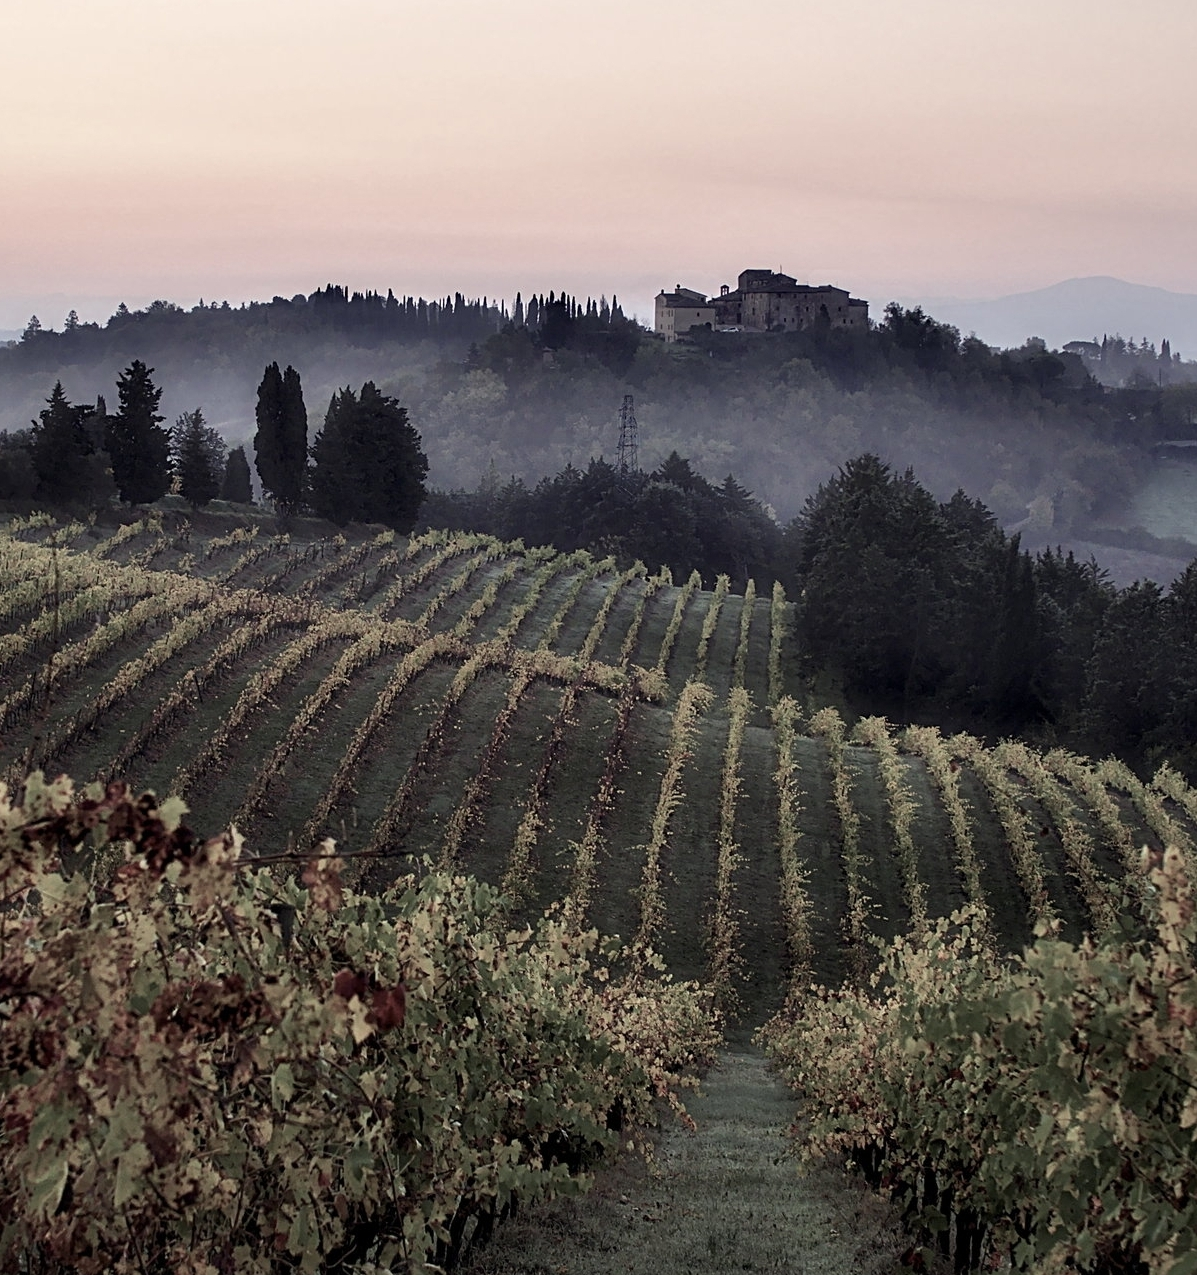 Vineyards_in_Tuscany_quality_image.jpg